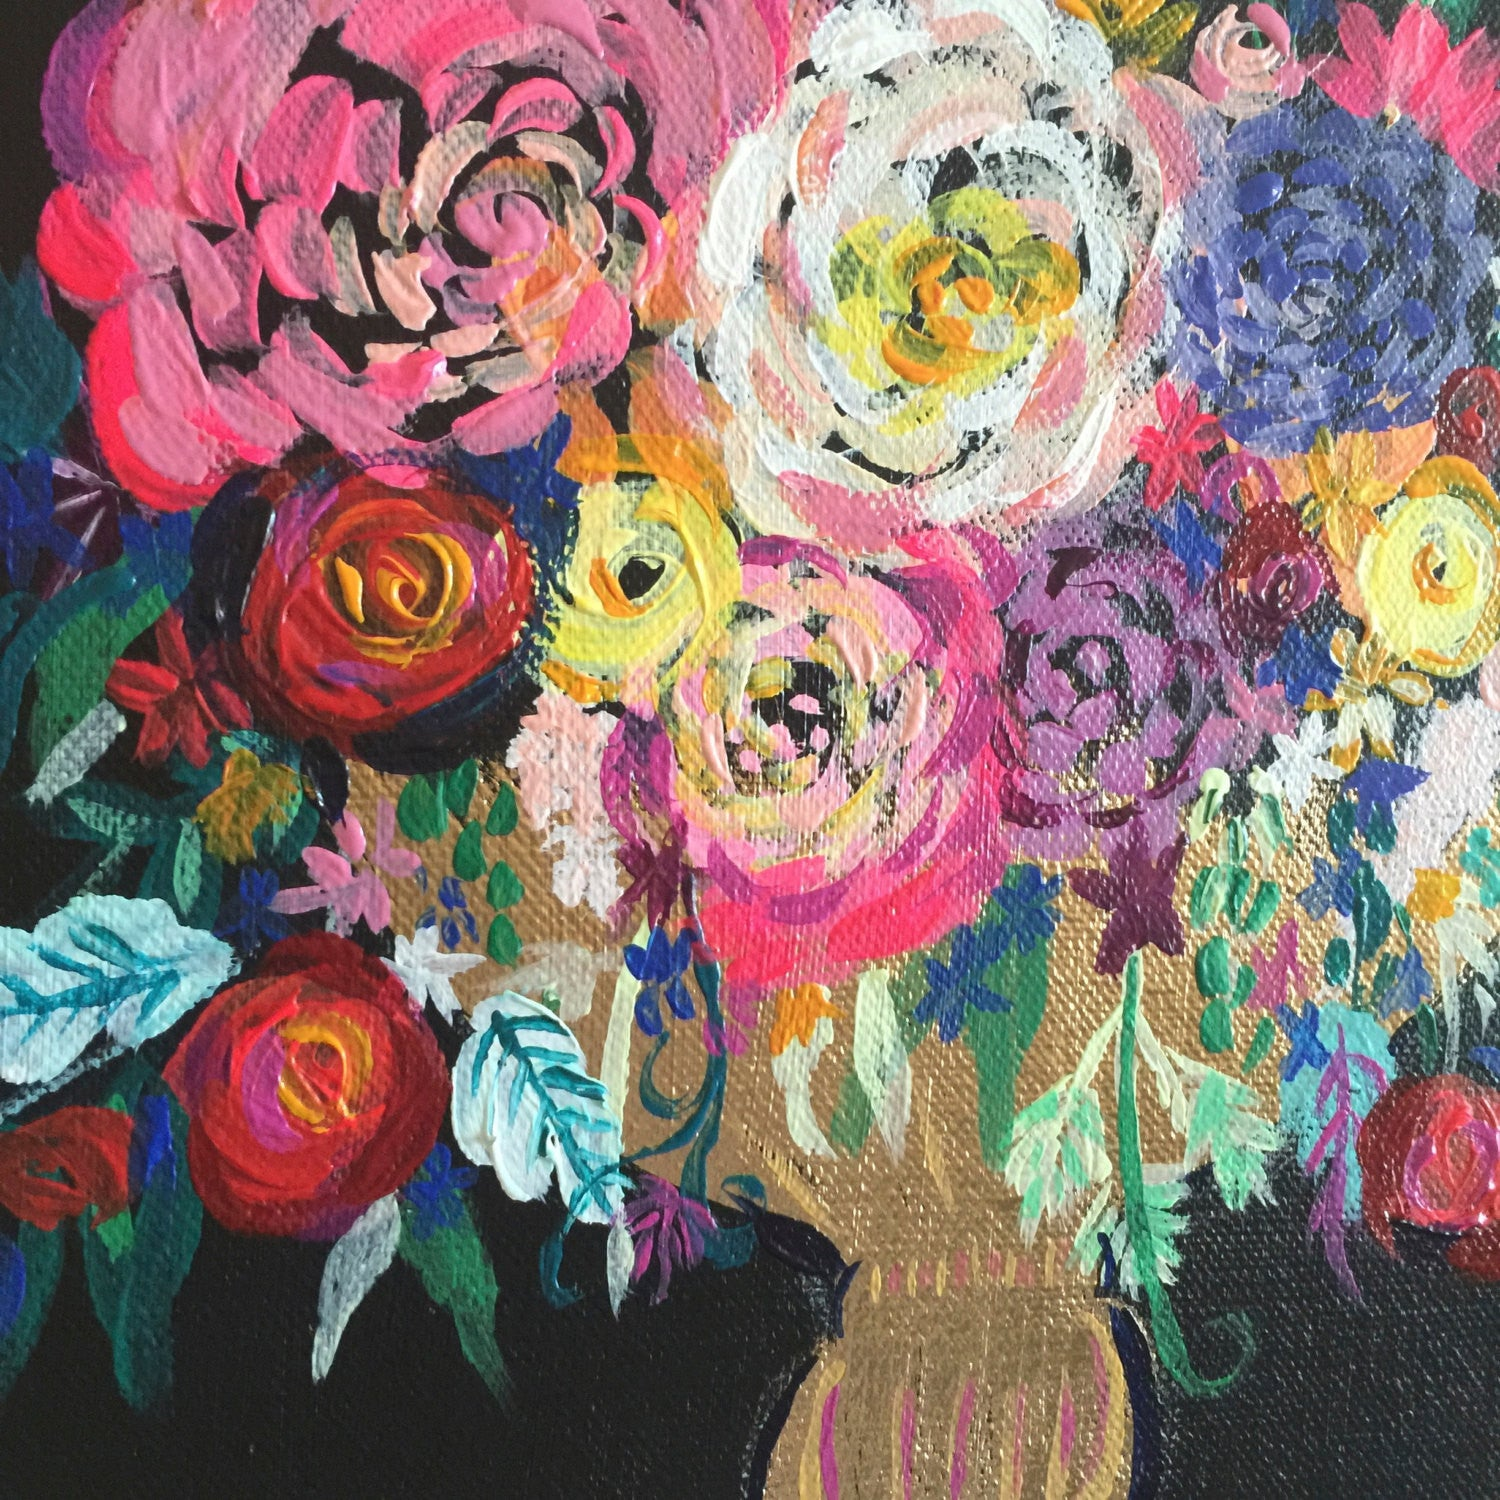 Colorful Floral Bouquet with black background painting. Bold bright colors make up this lovely group of flowers in a small golden vessel.